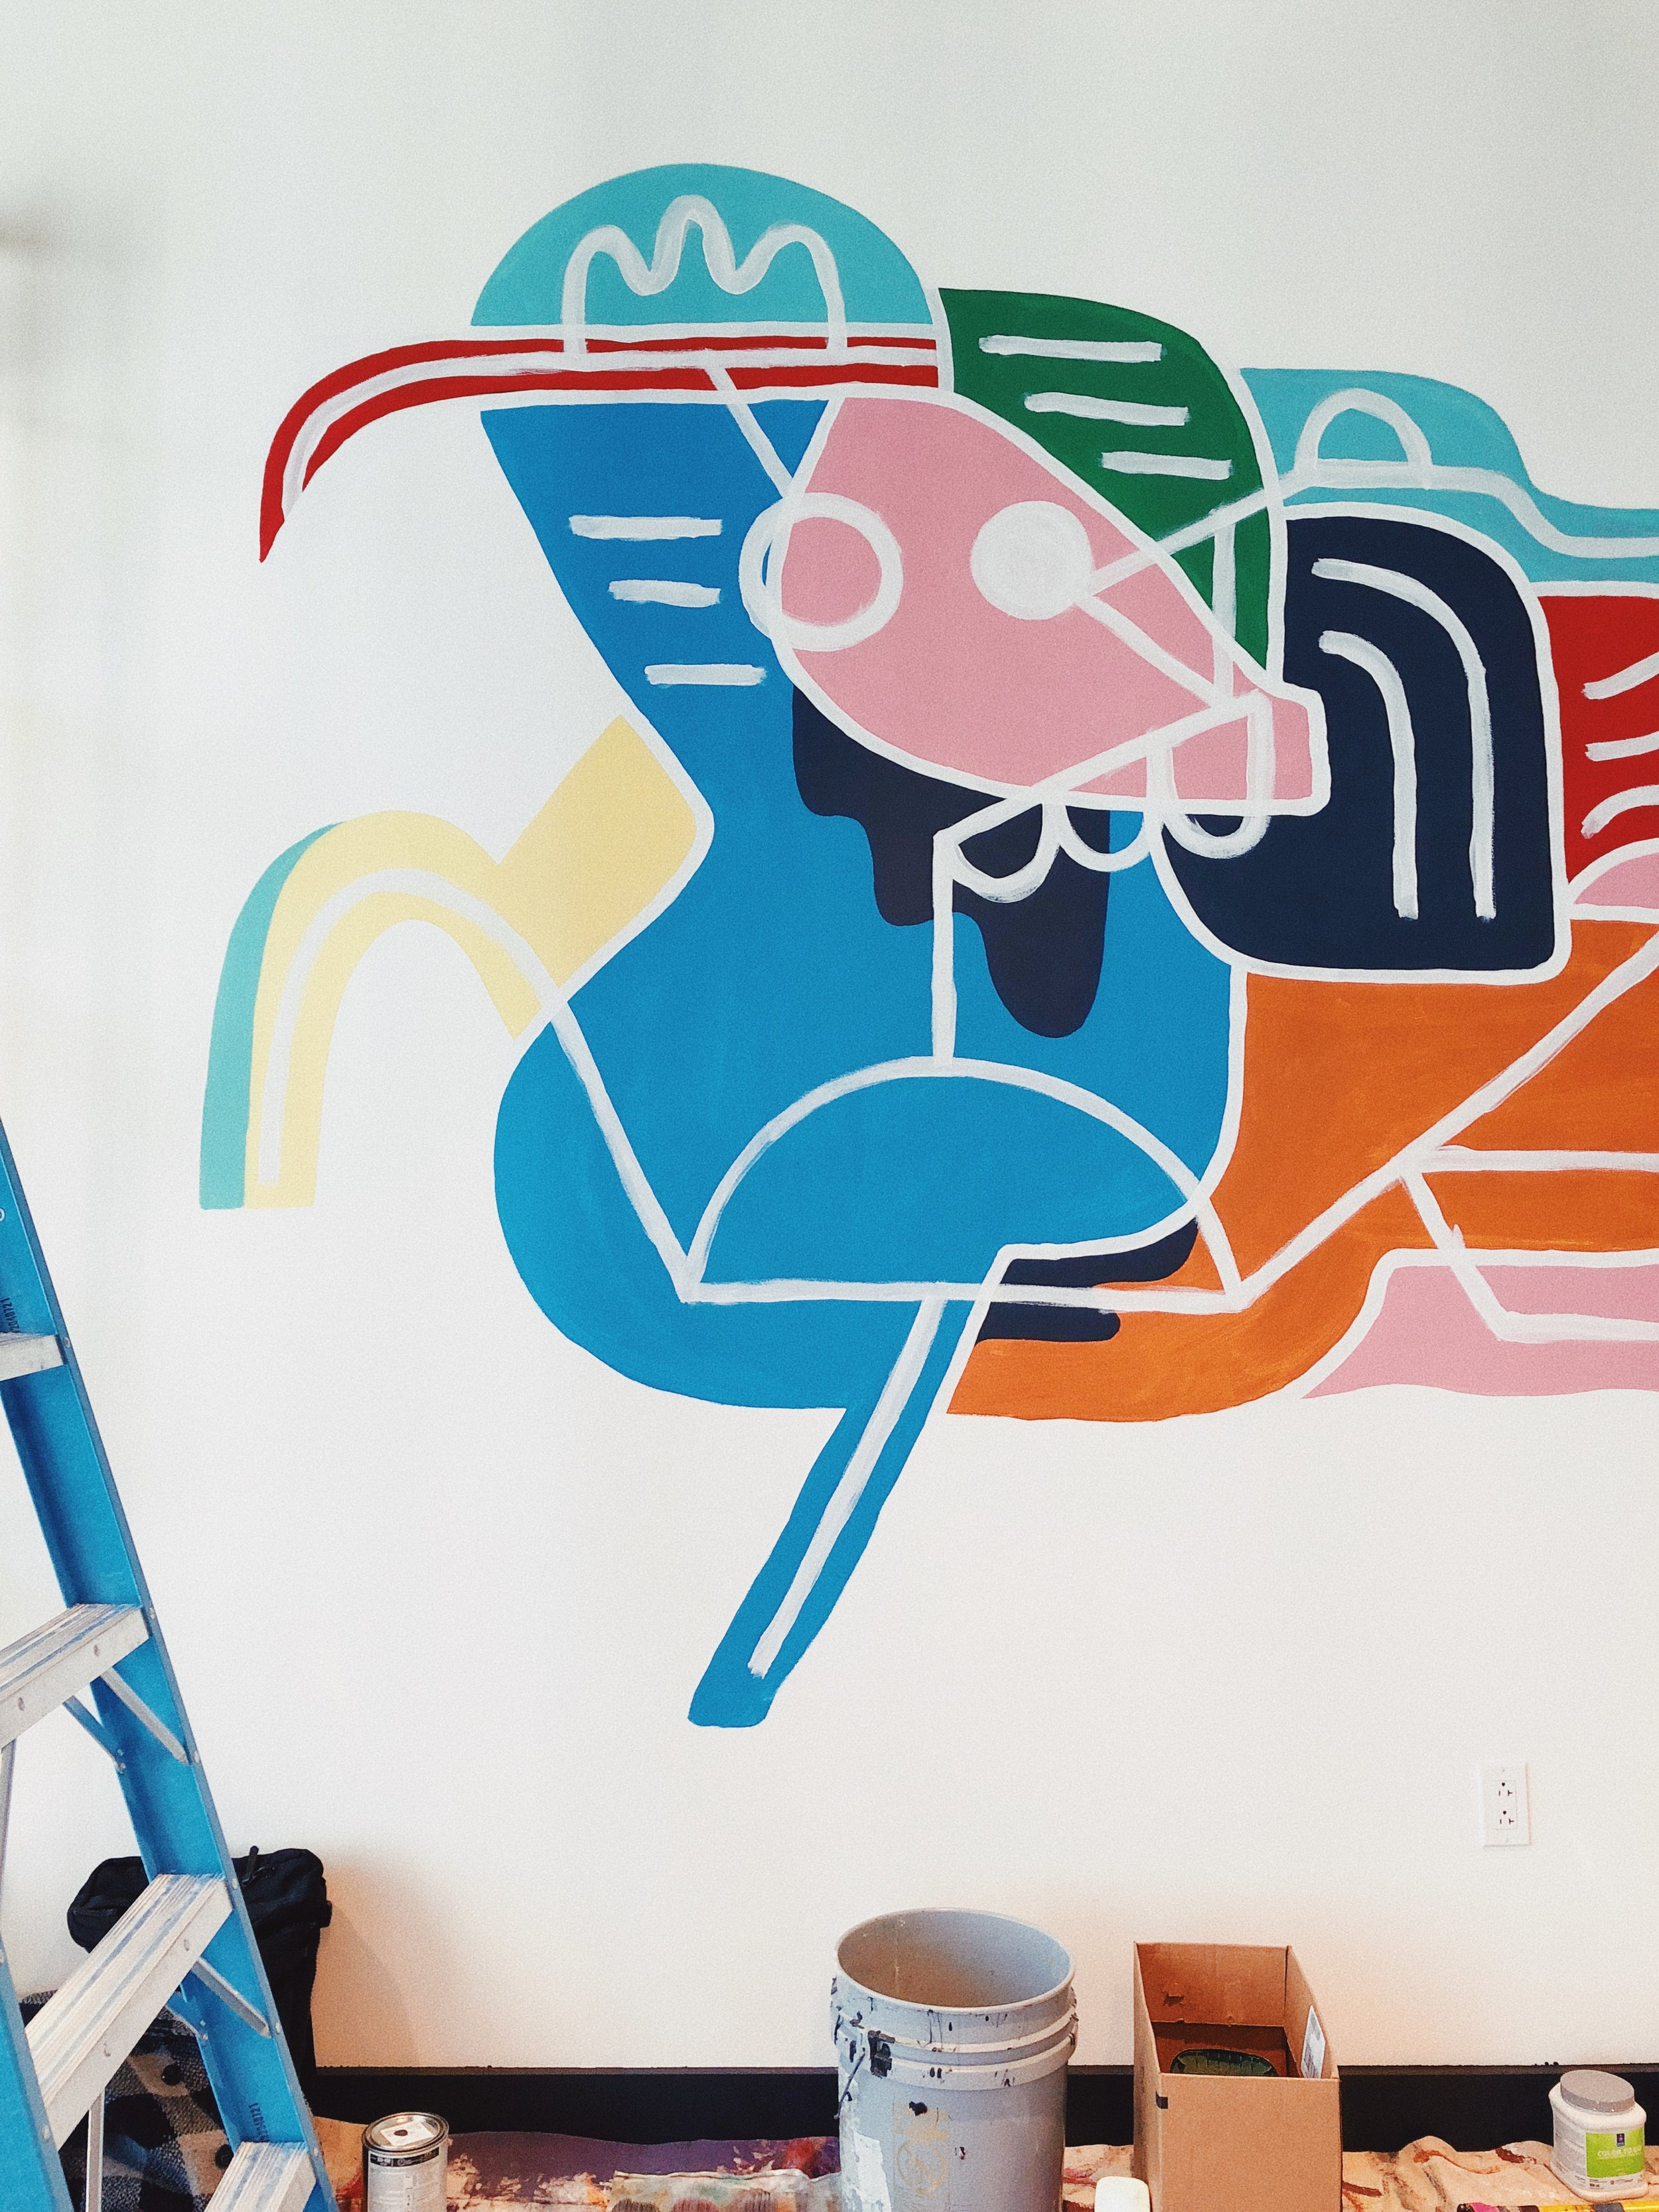 Mural Detail at WeWork by Kyle Steed